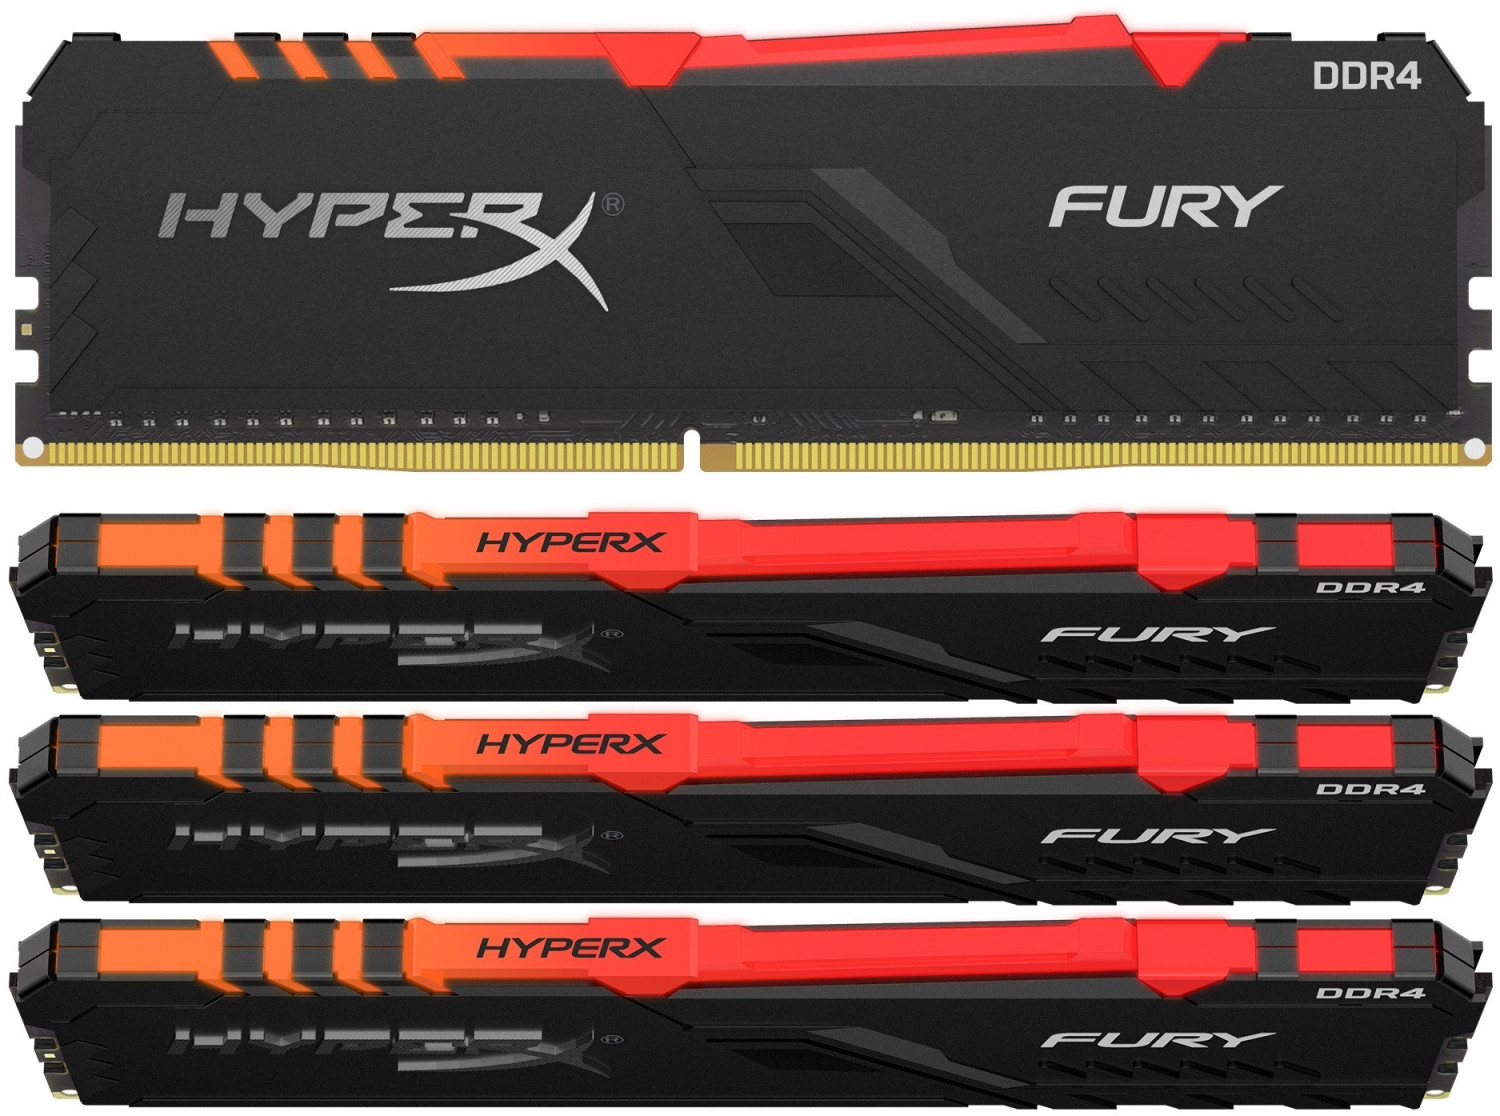 #HyperX Fury RGB 32GB Kit DDR4-3200 CL16 (HX434C16FB3AK4/32)#